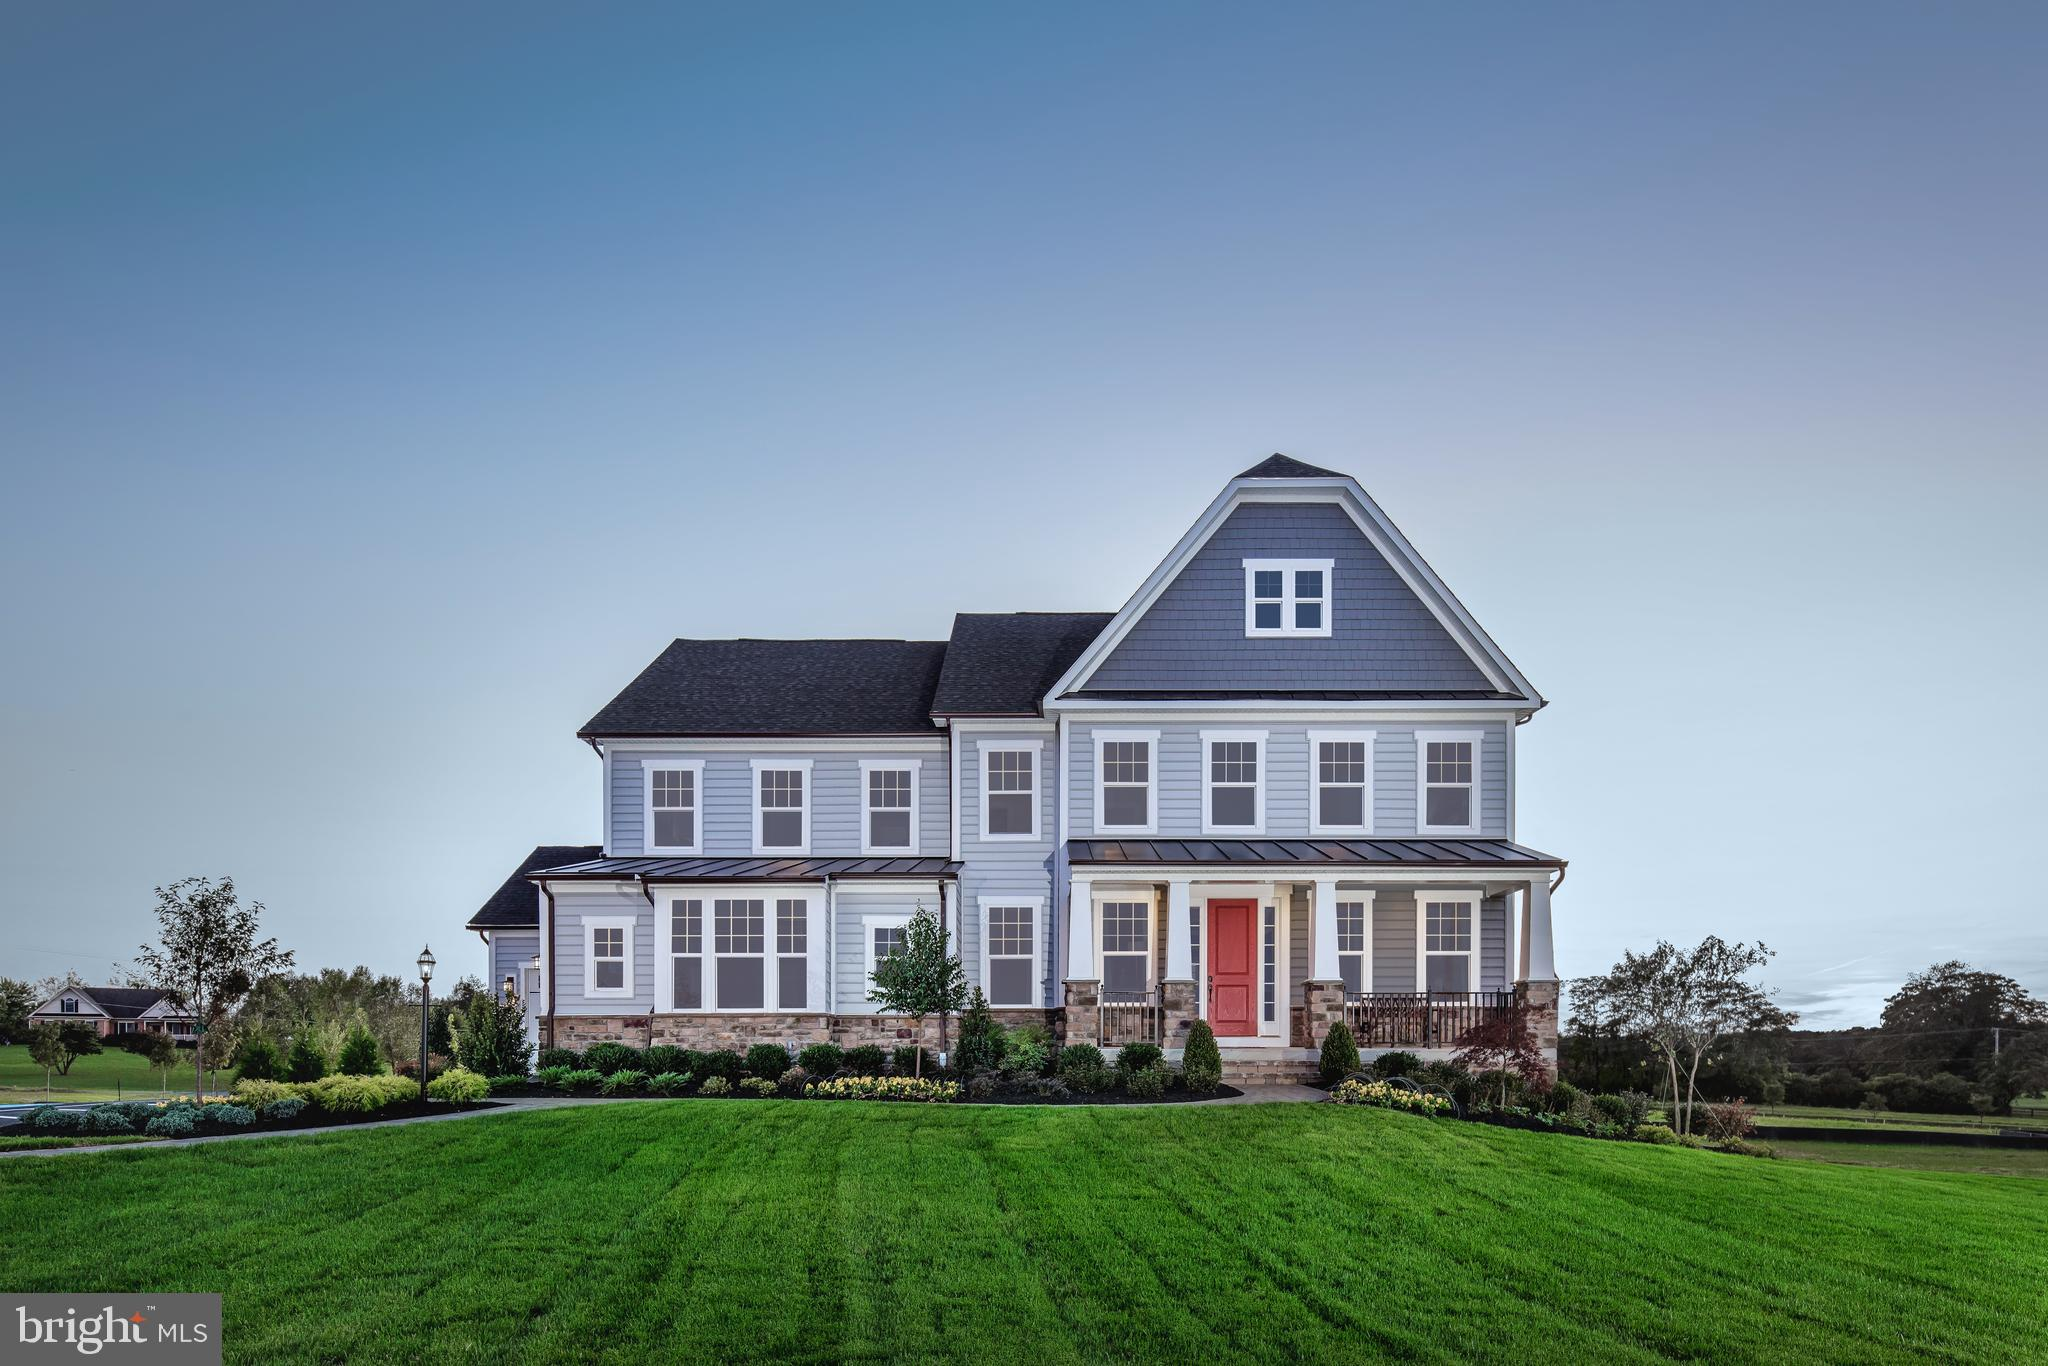 """Welcome to Greystone by NVHomes , a community that more than 100 people have already decided to call home! Greystone features the only single family homes in a neighborhood with sidewalks, rolling hills, and seven miles of walking trails just minutes from the Borough. The Marymount at Greystone features all the beauty and craftsmanship you deserve in a new home. You will love the hardieplank facade and blue stone front stoops that welcome you home. . As you walk into the foyer youre greeted by light-filled spaces that feel welcoming. To one side, is the dining room, perfect for formal gatherings. To the other a flex room to make your own, whether its a living room, music room -- even add glass double doors and built-in book cases to make it a library. Past a switch back, oak stair a gourmet kitchen with an oversized island that acts as the command center of the home, giving you a practical and functional space thats still elegant. Upgraded features including CushionClose cabinetry, quartz countertops, and 5"""" hardwood floors. The dinette is perfect for cozy family meals and the family room gives plenty of gathering space. Off of the 2 car side entry garage, you will enter into a family entrance with an arrival center and walk-in closet providing you with plenty of storage. Option for 3 or 4 car garage available. A double-door study makes work-from-home a viable concept, or make it a first-floor suite, perfect for guests. The second floor continues to give you the same sense of arrival as on the first floor with a wide hallway. Each of the bedrooms features a large walk-in closet and has access to a bathroom. But the true story luxury is shown in the owners suite. From its dramatic double door entry, this suite lives like a private retreat, providing two enormous walk-in closets, one with a full-length mirror; a tucked-away sitting area; and a spa-like bathroom with dual quartz vanities, roman shower, and a compartmentalized water closet. Your included finished baseme"""